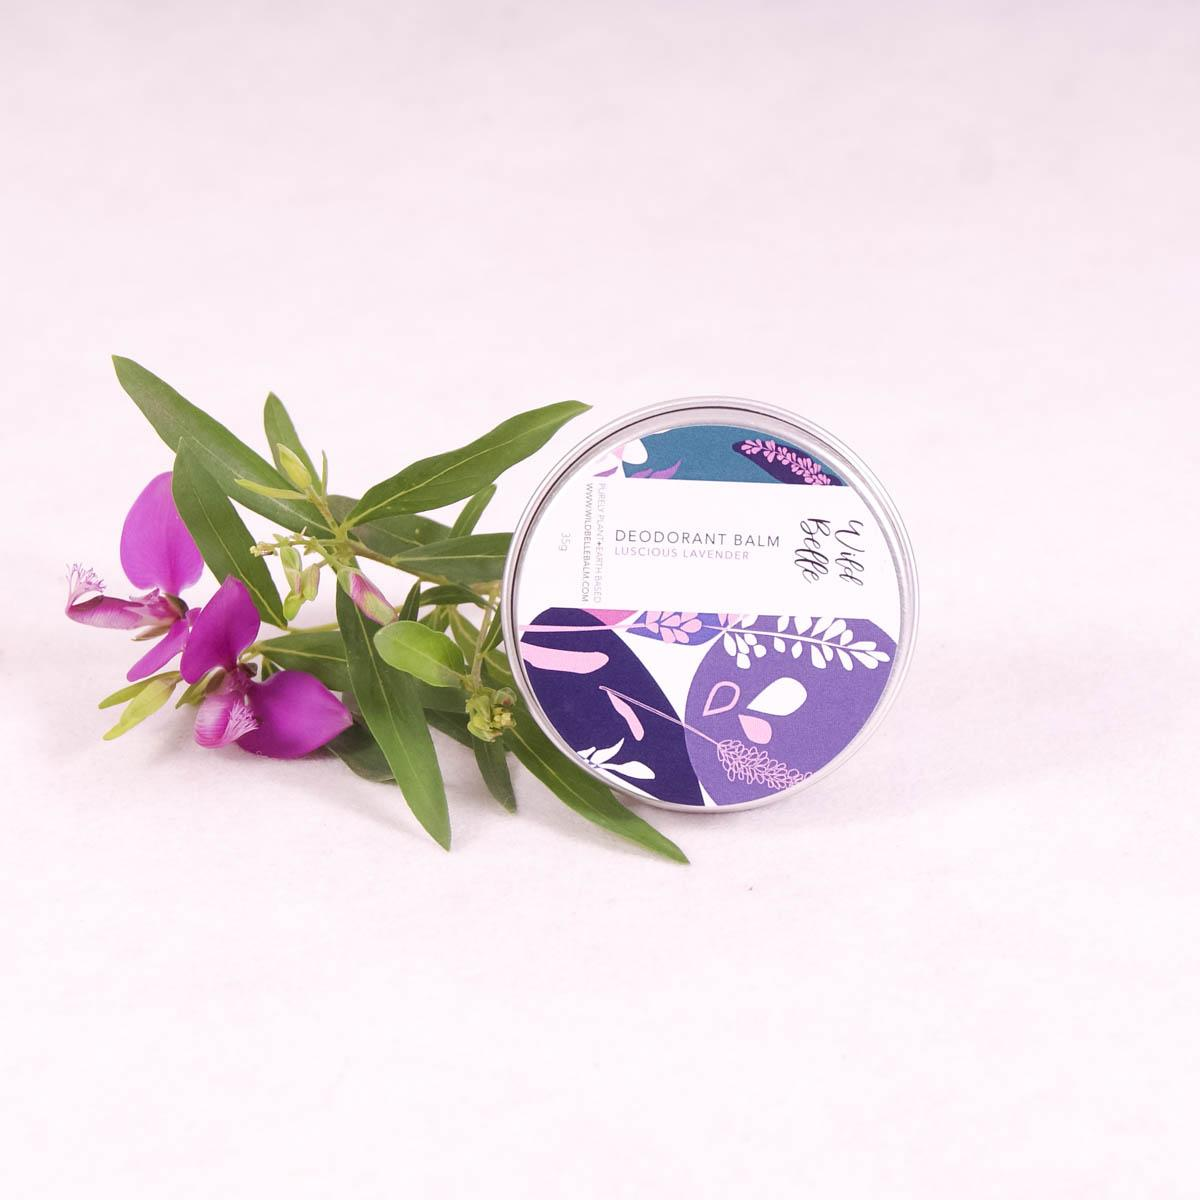 Luscious Lavender Natural Deodorant Balm - 35gm - Deodorant - Throw Some Seeds - Australian gardening gifts and eco products online!